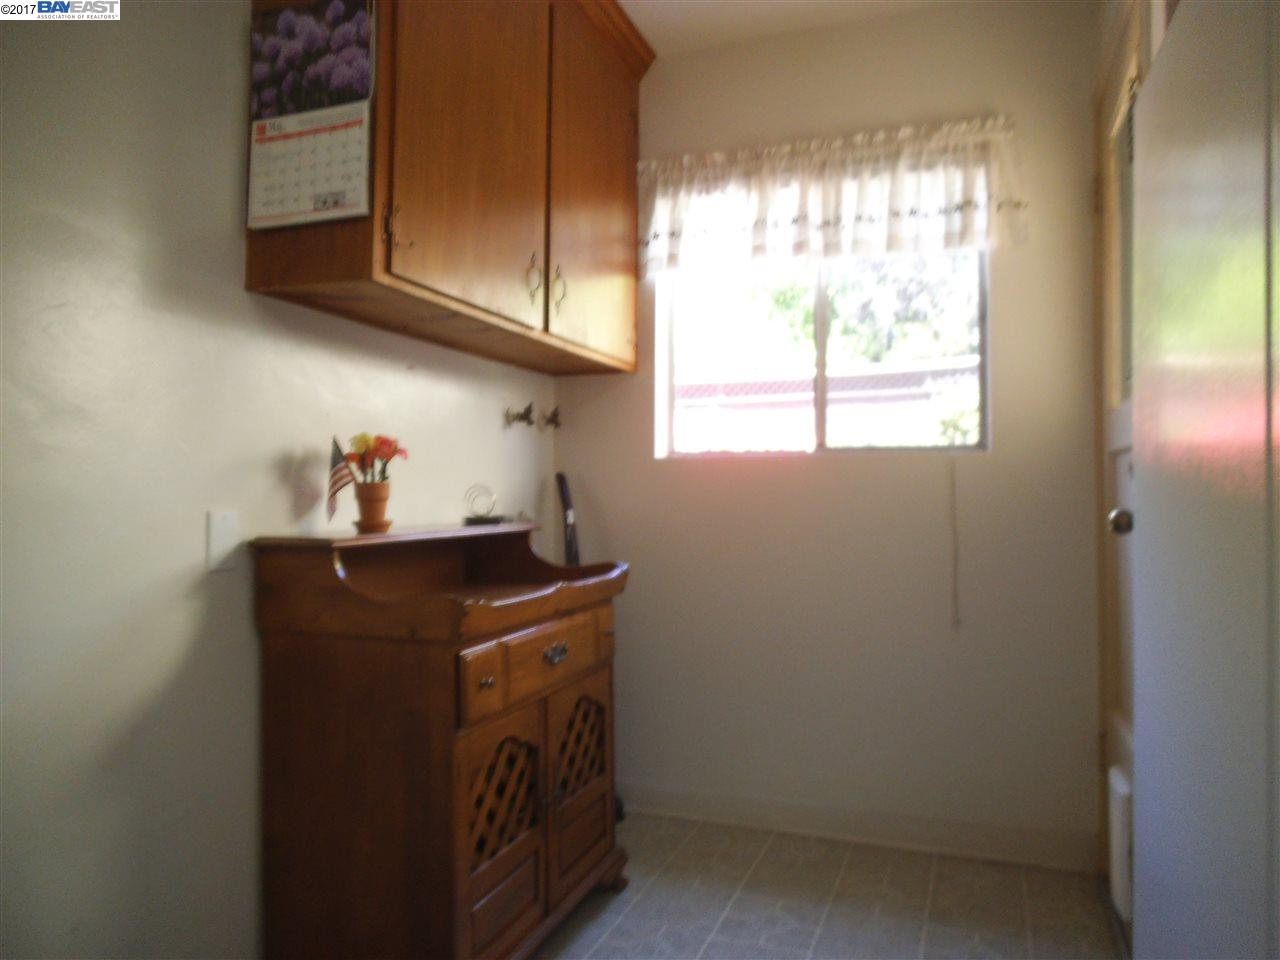 Additional photo for property listing at 17280 Los Banos Street  Hayward, California 94541 United States